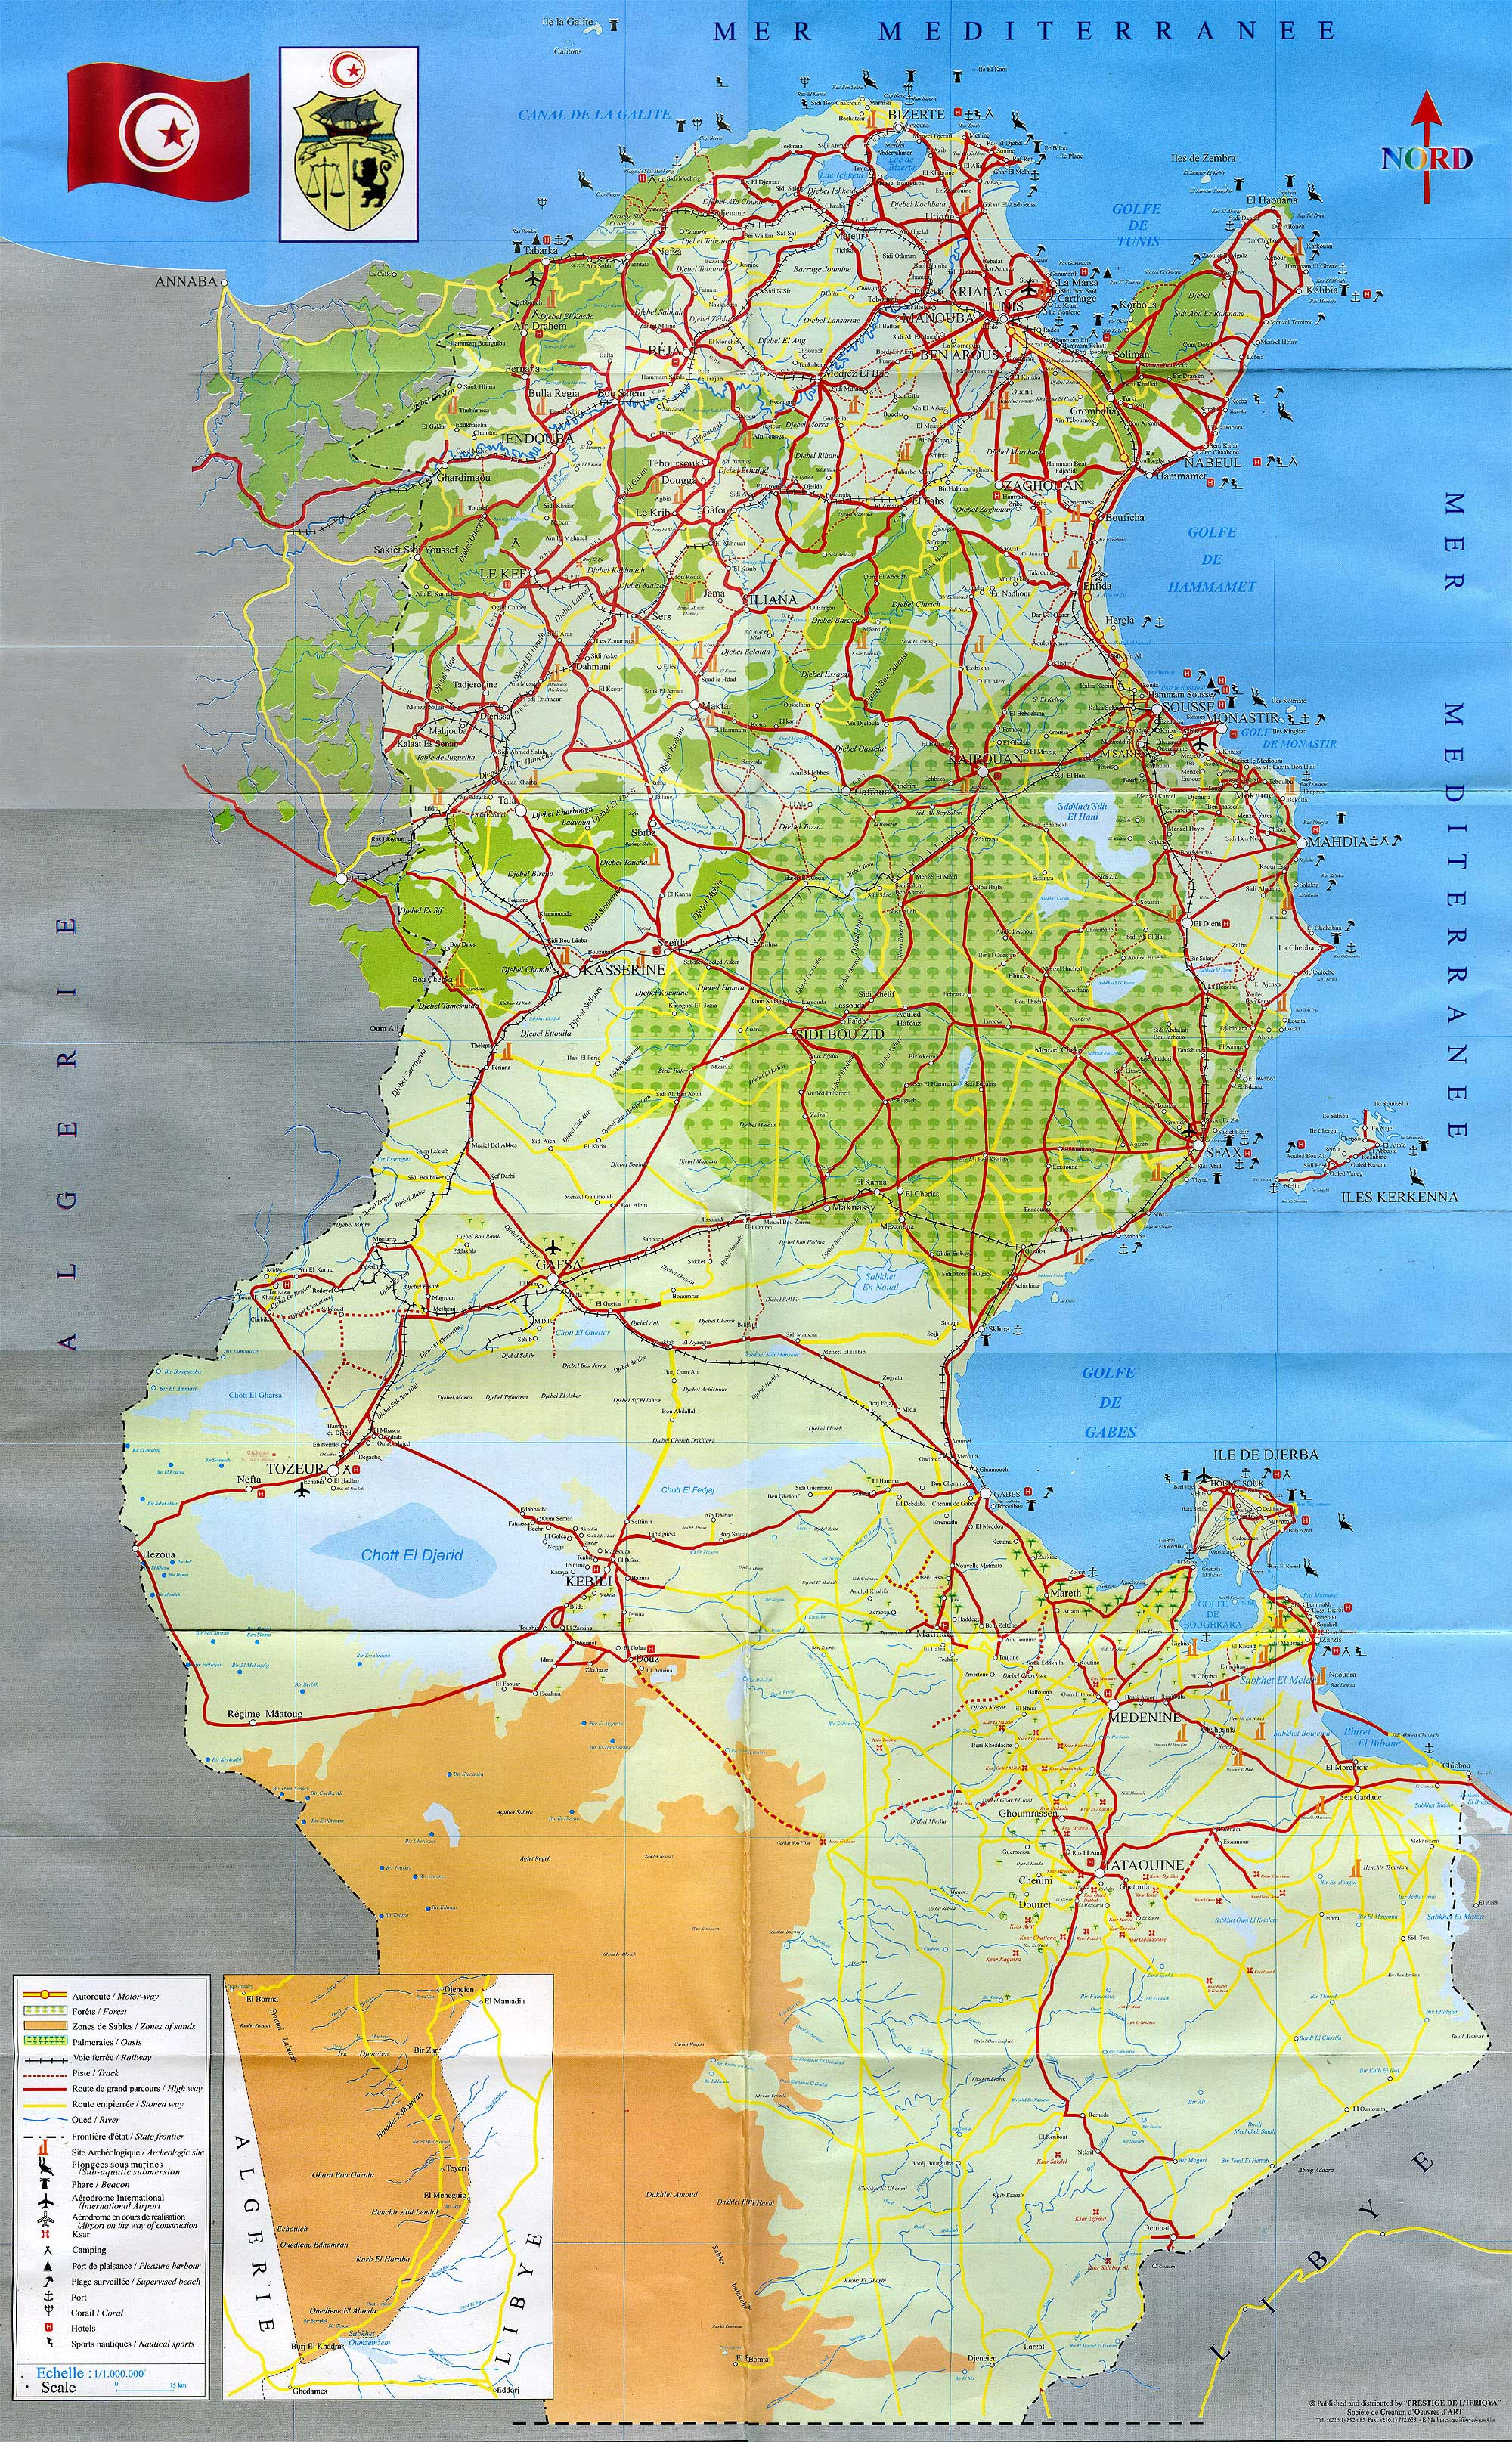 Tunisia Travel Maps | Metro Map | Bus Routes | Metrobus Way Map ... Tunisia Travel Maps